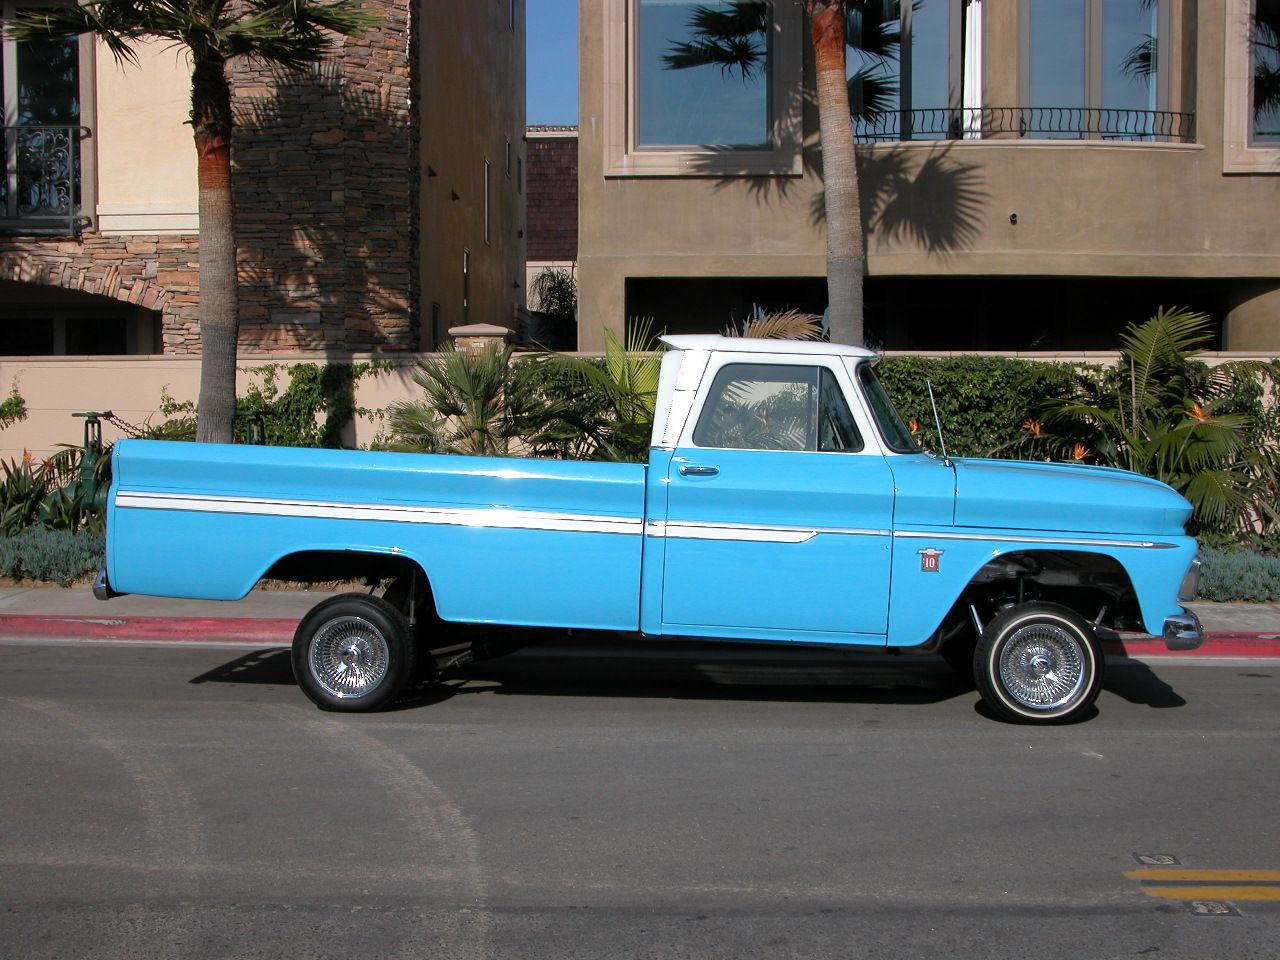 64 chevy 1964 chevy c 10 stepside shortbed custom truck show quality c 10 photo